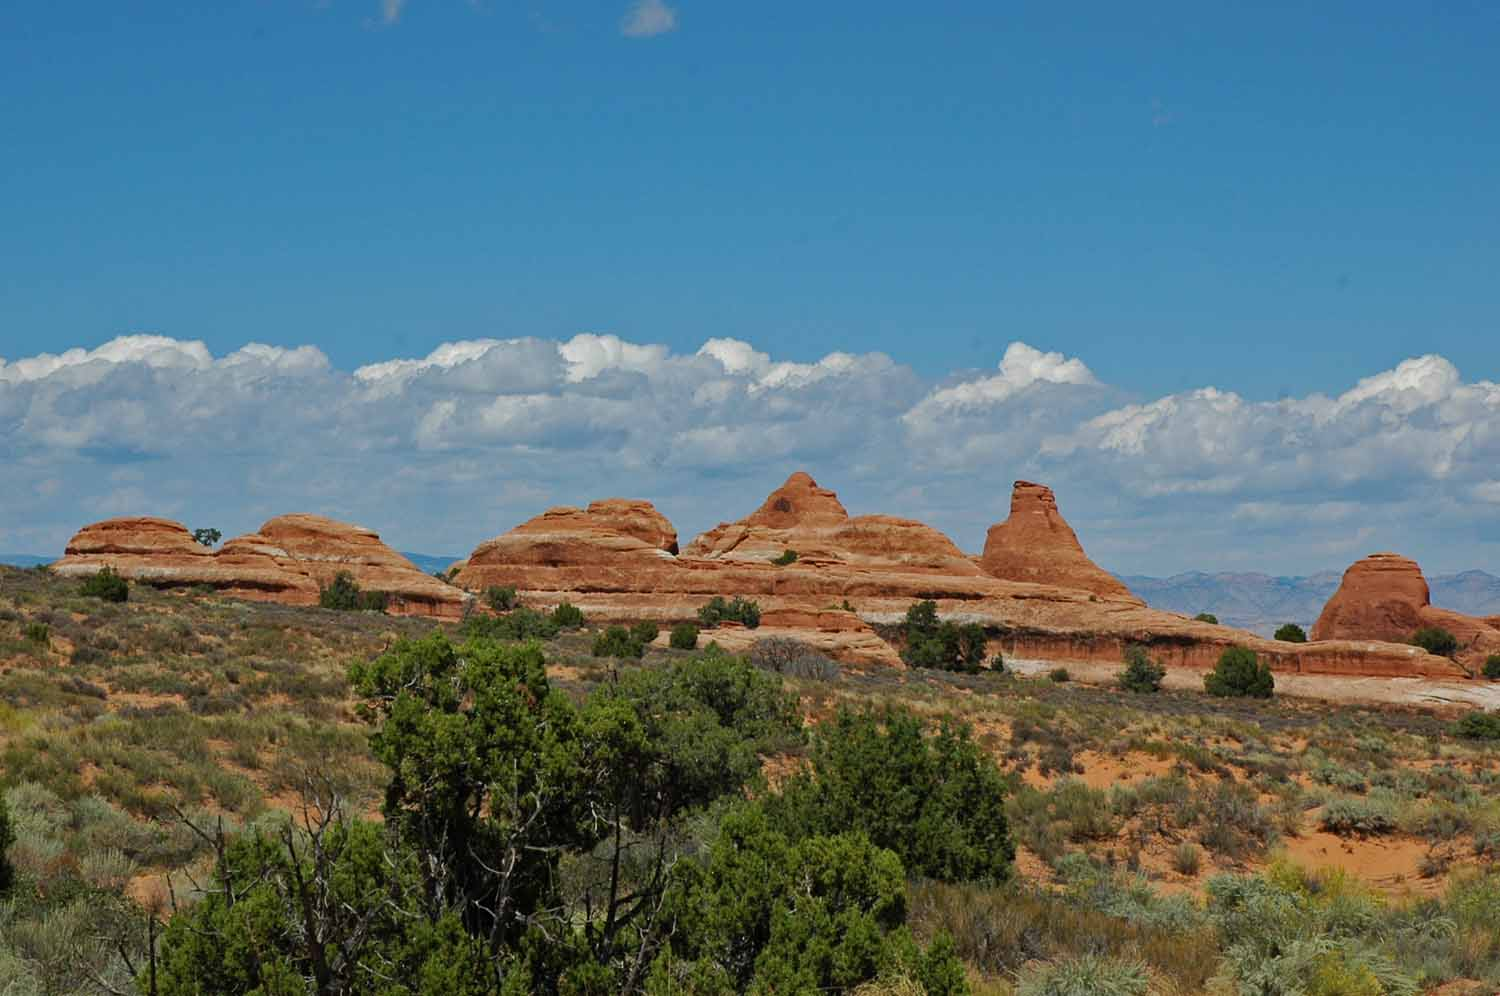 Lots of photo opts at Arches National Park